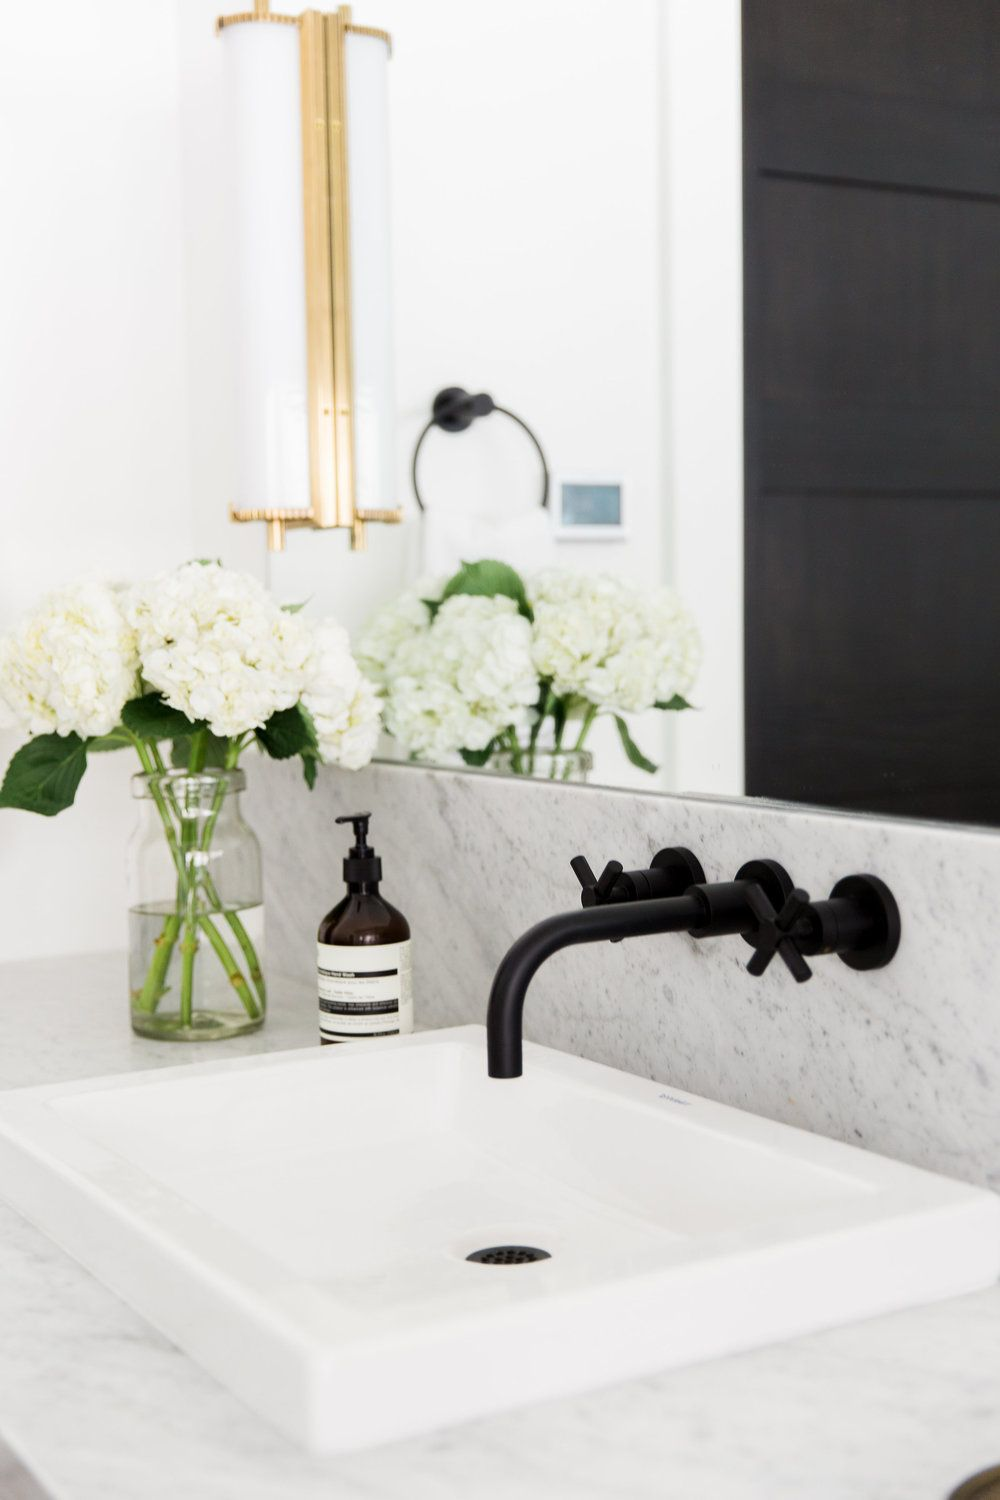 faucet and shallow sink matte black fixtures studio mcgee - Black Bathroom Faucets